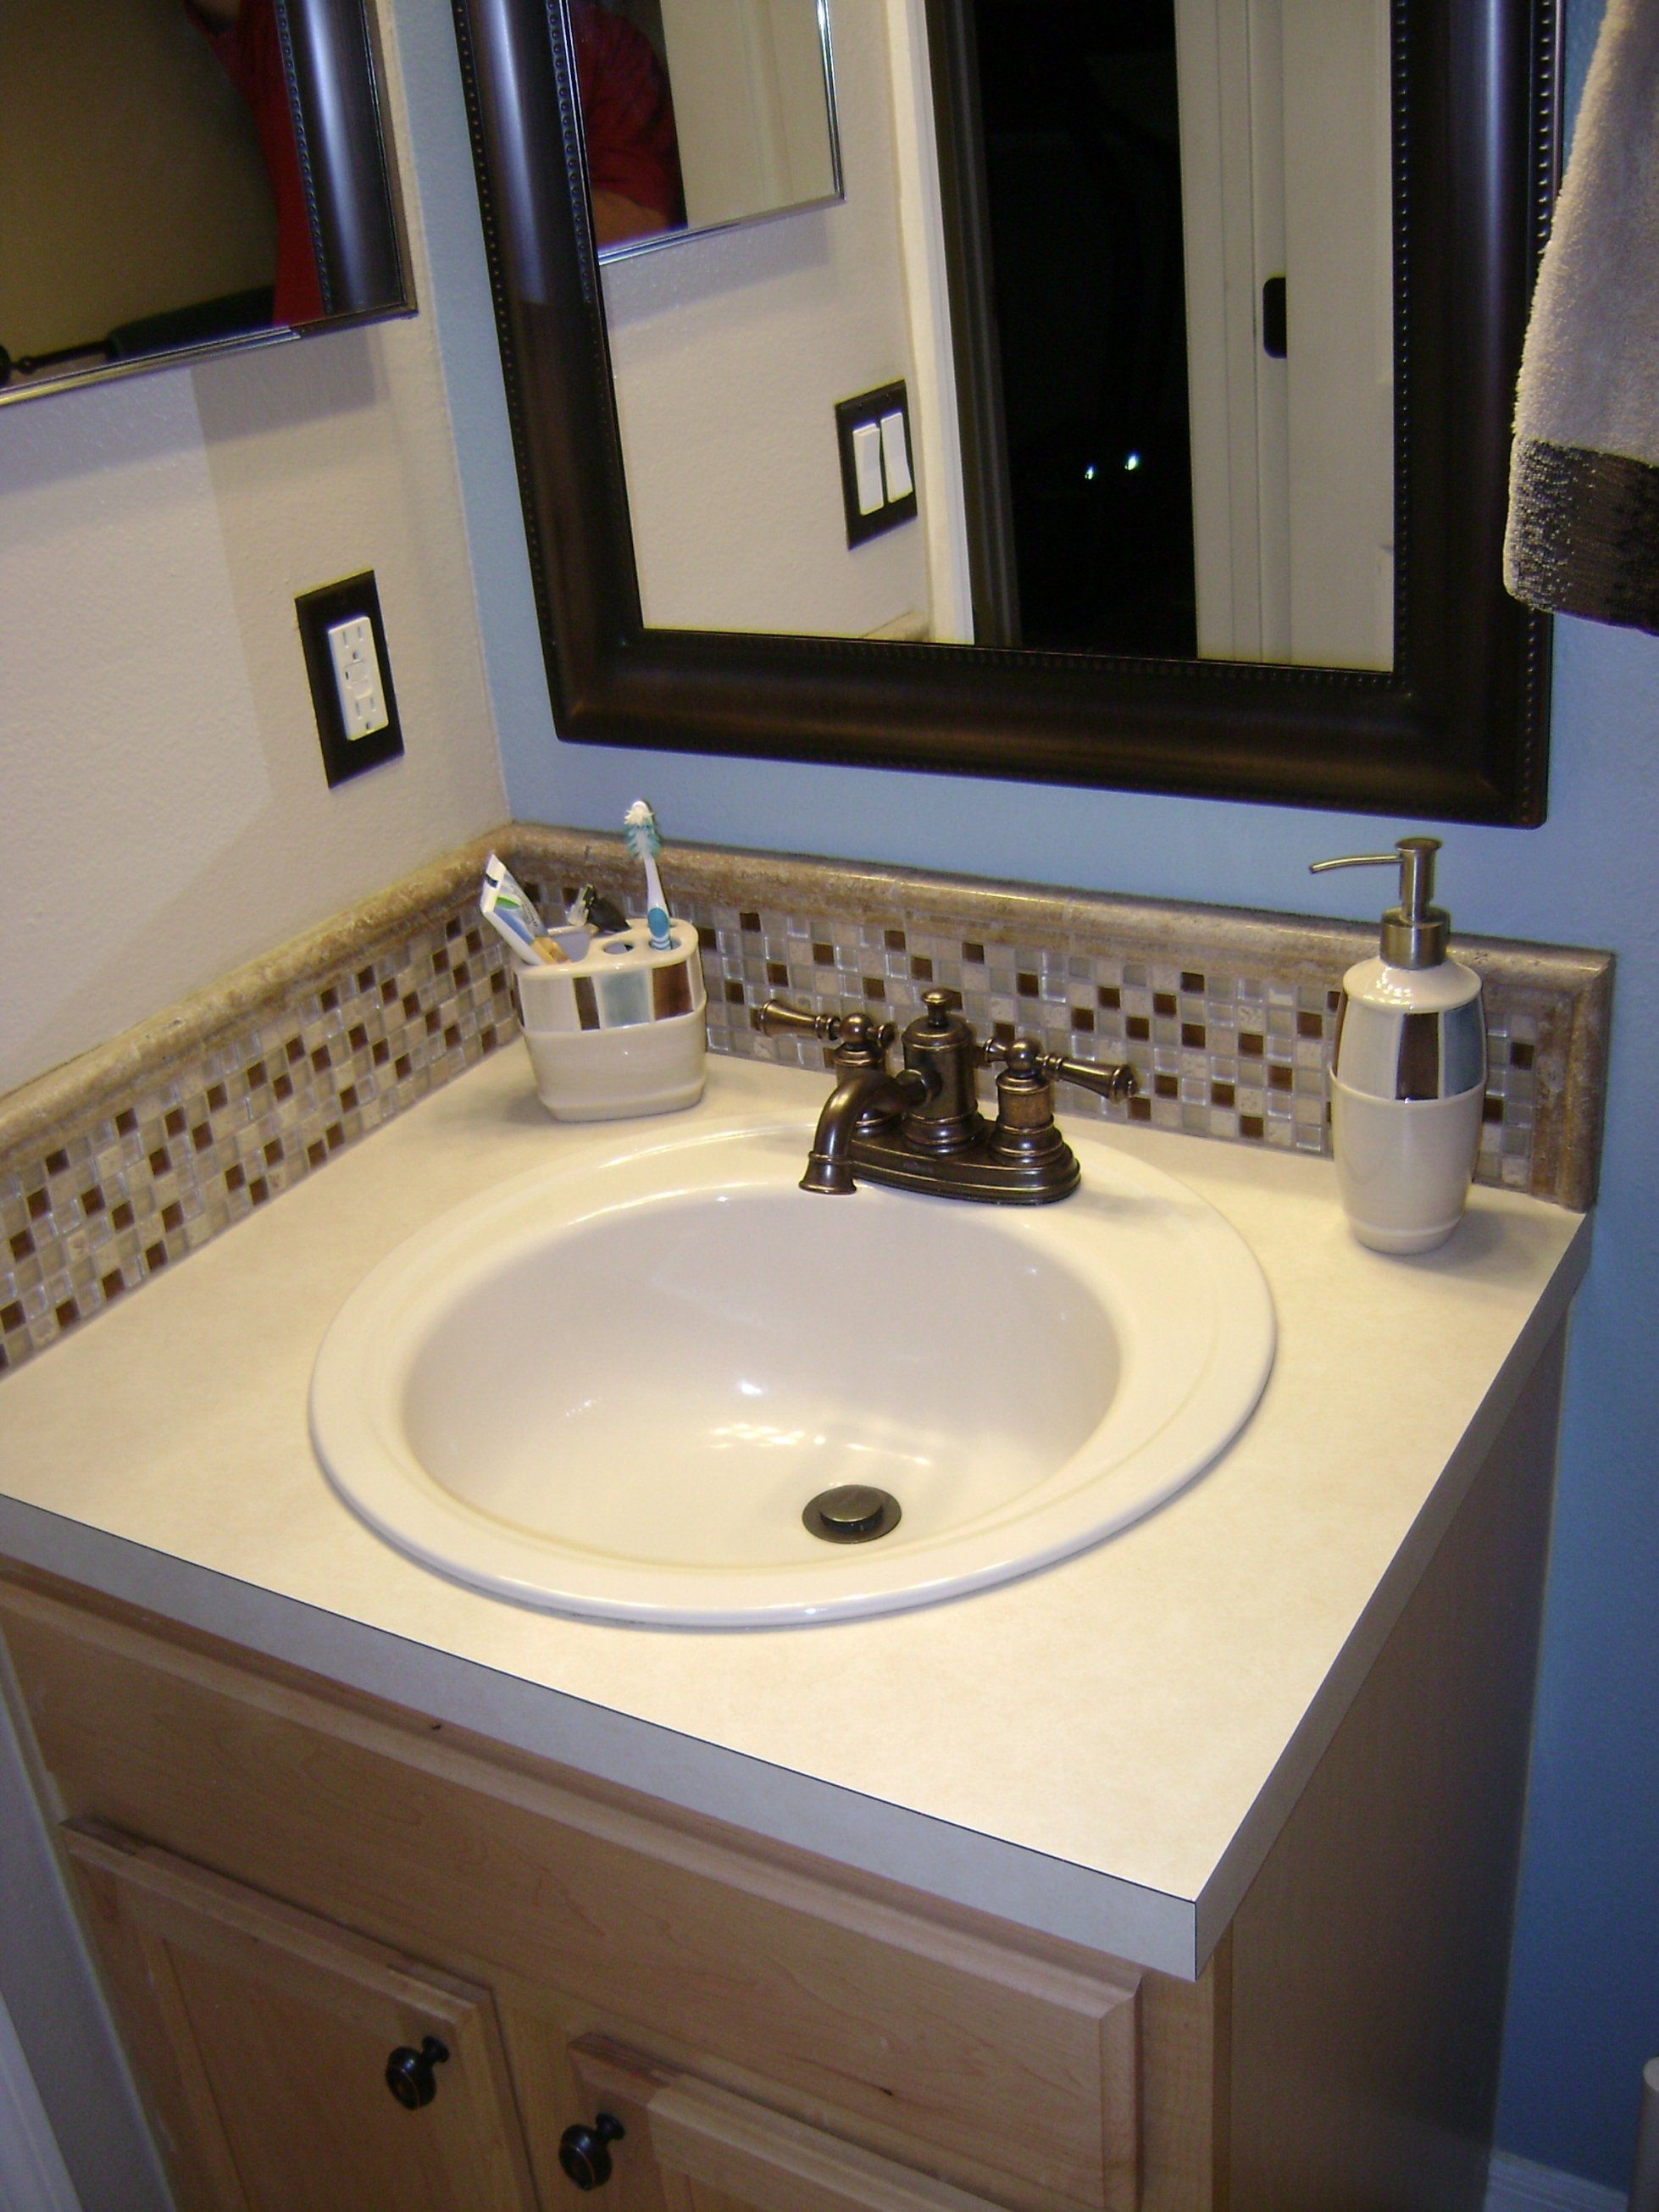 White And Brown Mosaic Tile Bathroom Sink Backsplash Ideas In L